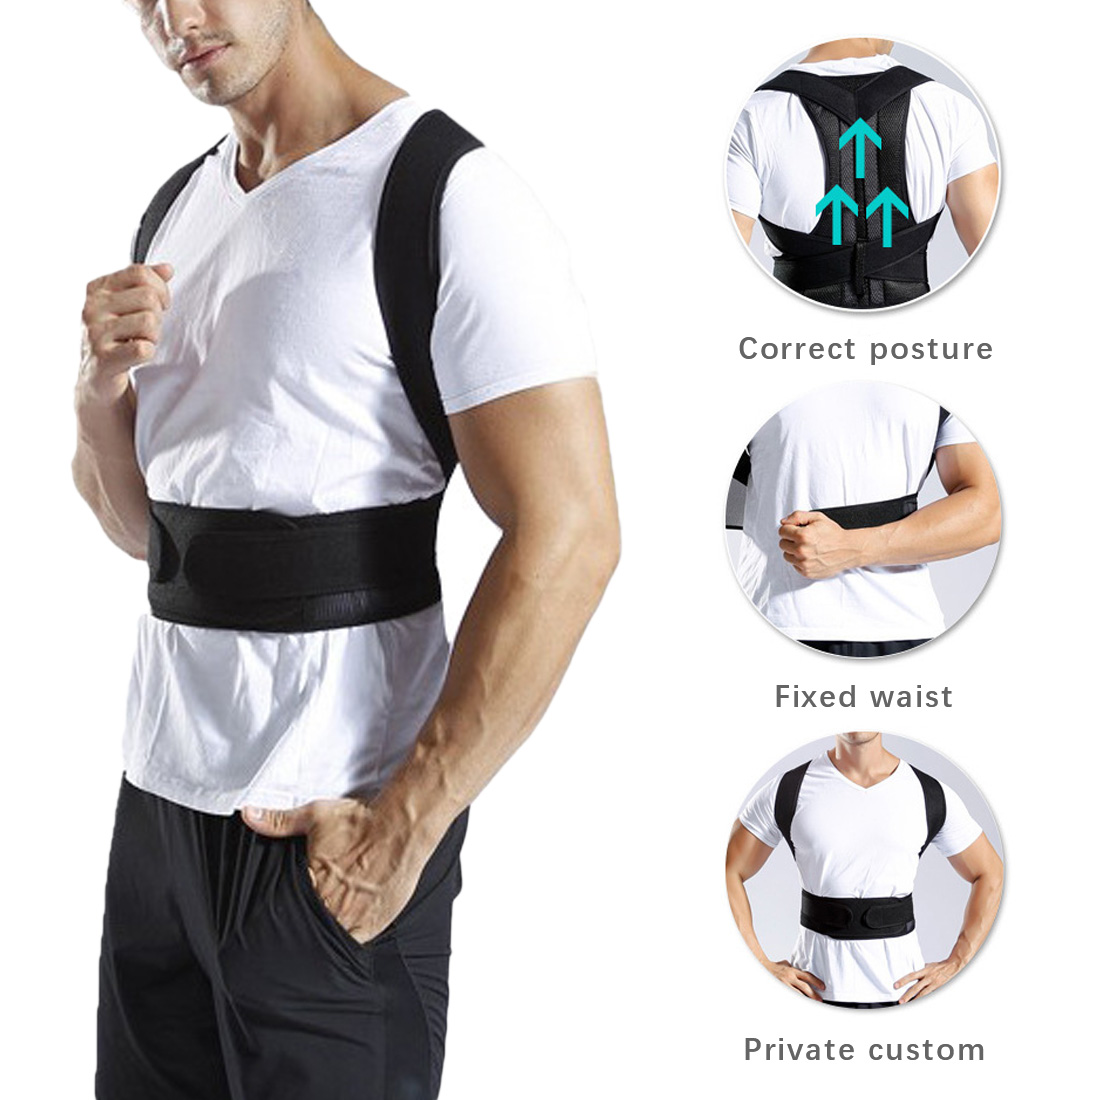 Back Posture Brace Clavicle Support Stop Slouching and Hunching Adjustable Back Trainer Posture Corrector for Men and Women